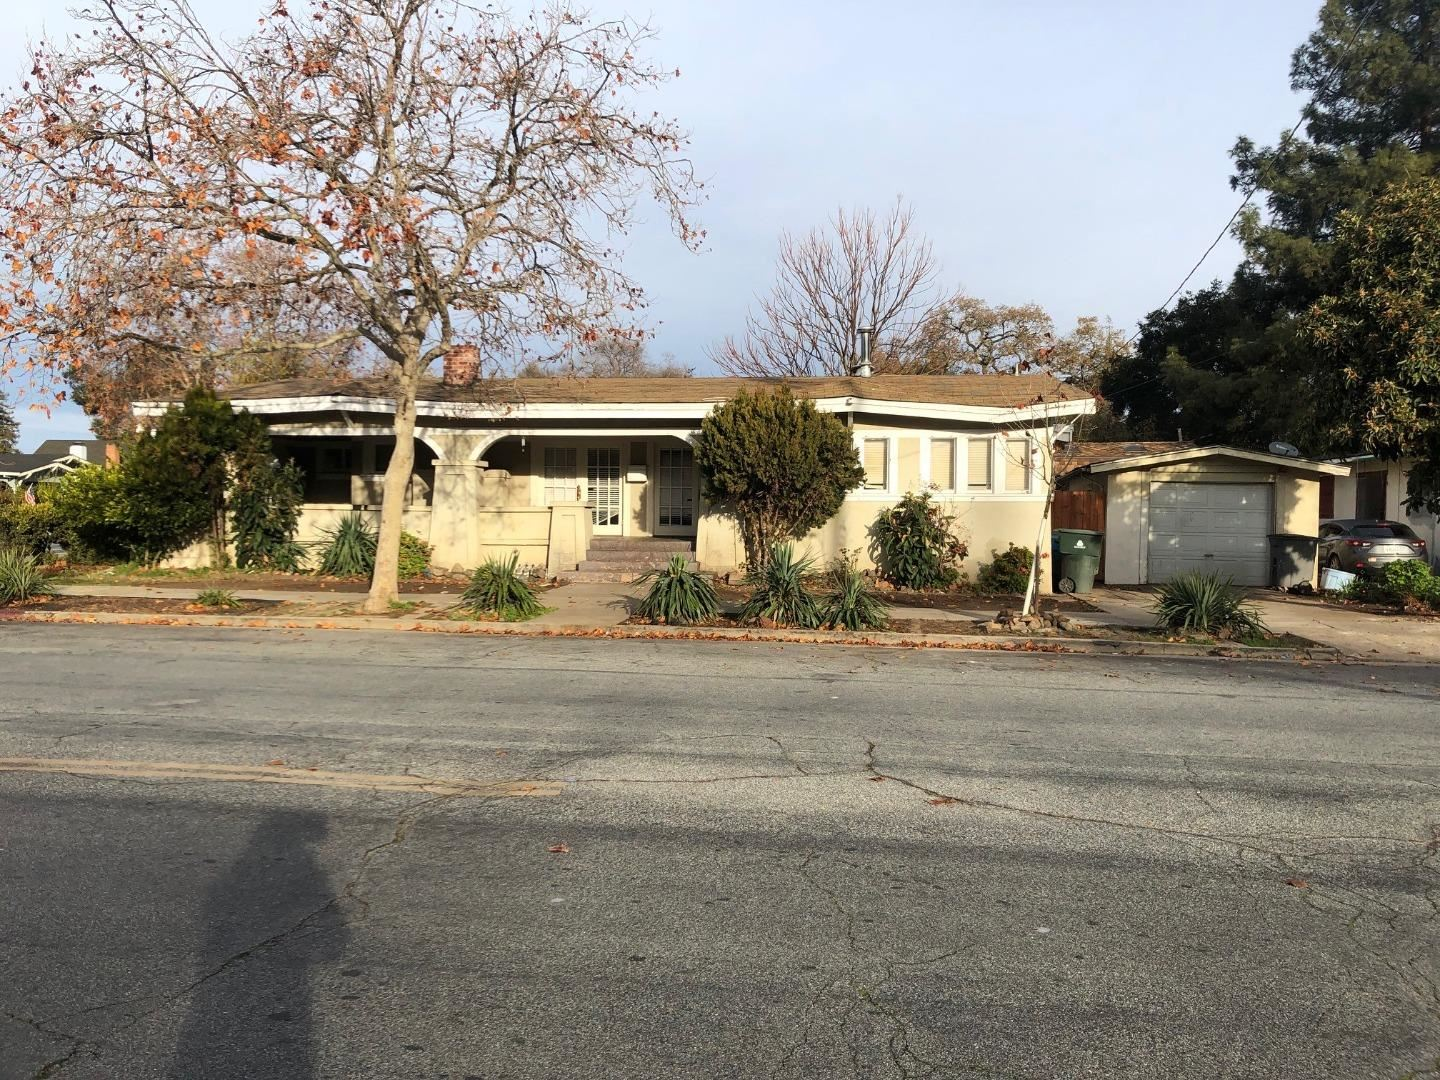 Photo for 165 2nd ST, GILROY, CA 95020 (MLS # ML81824939)